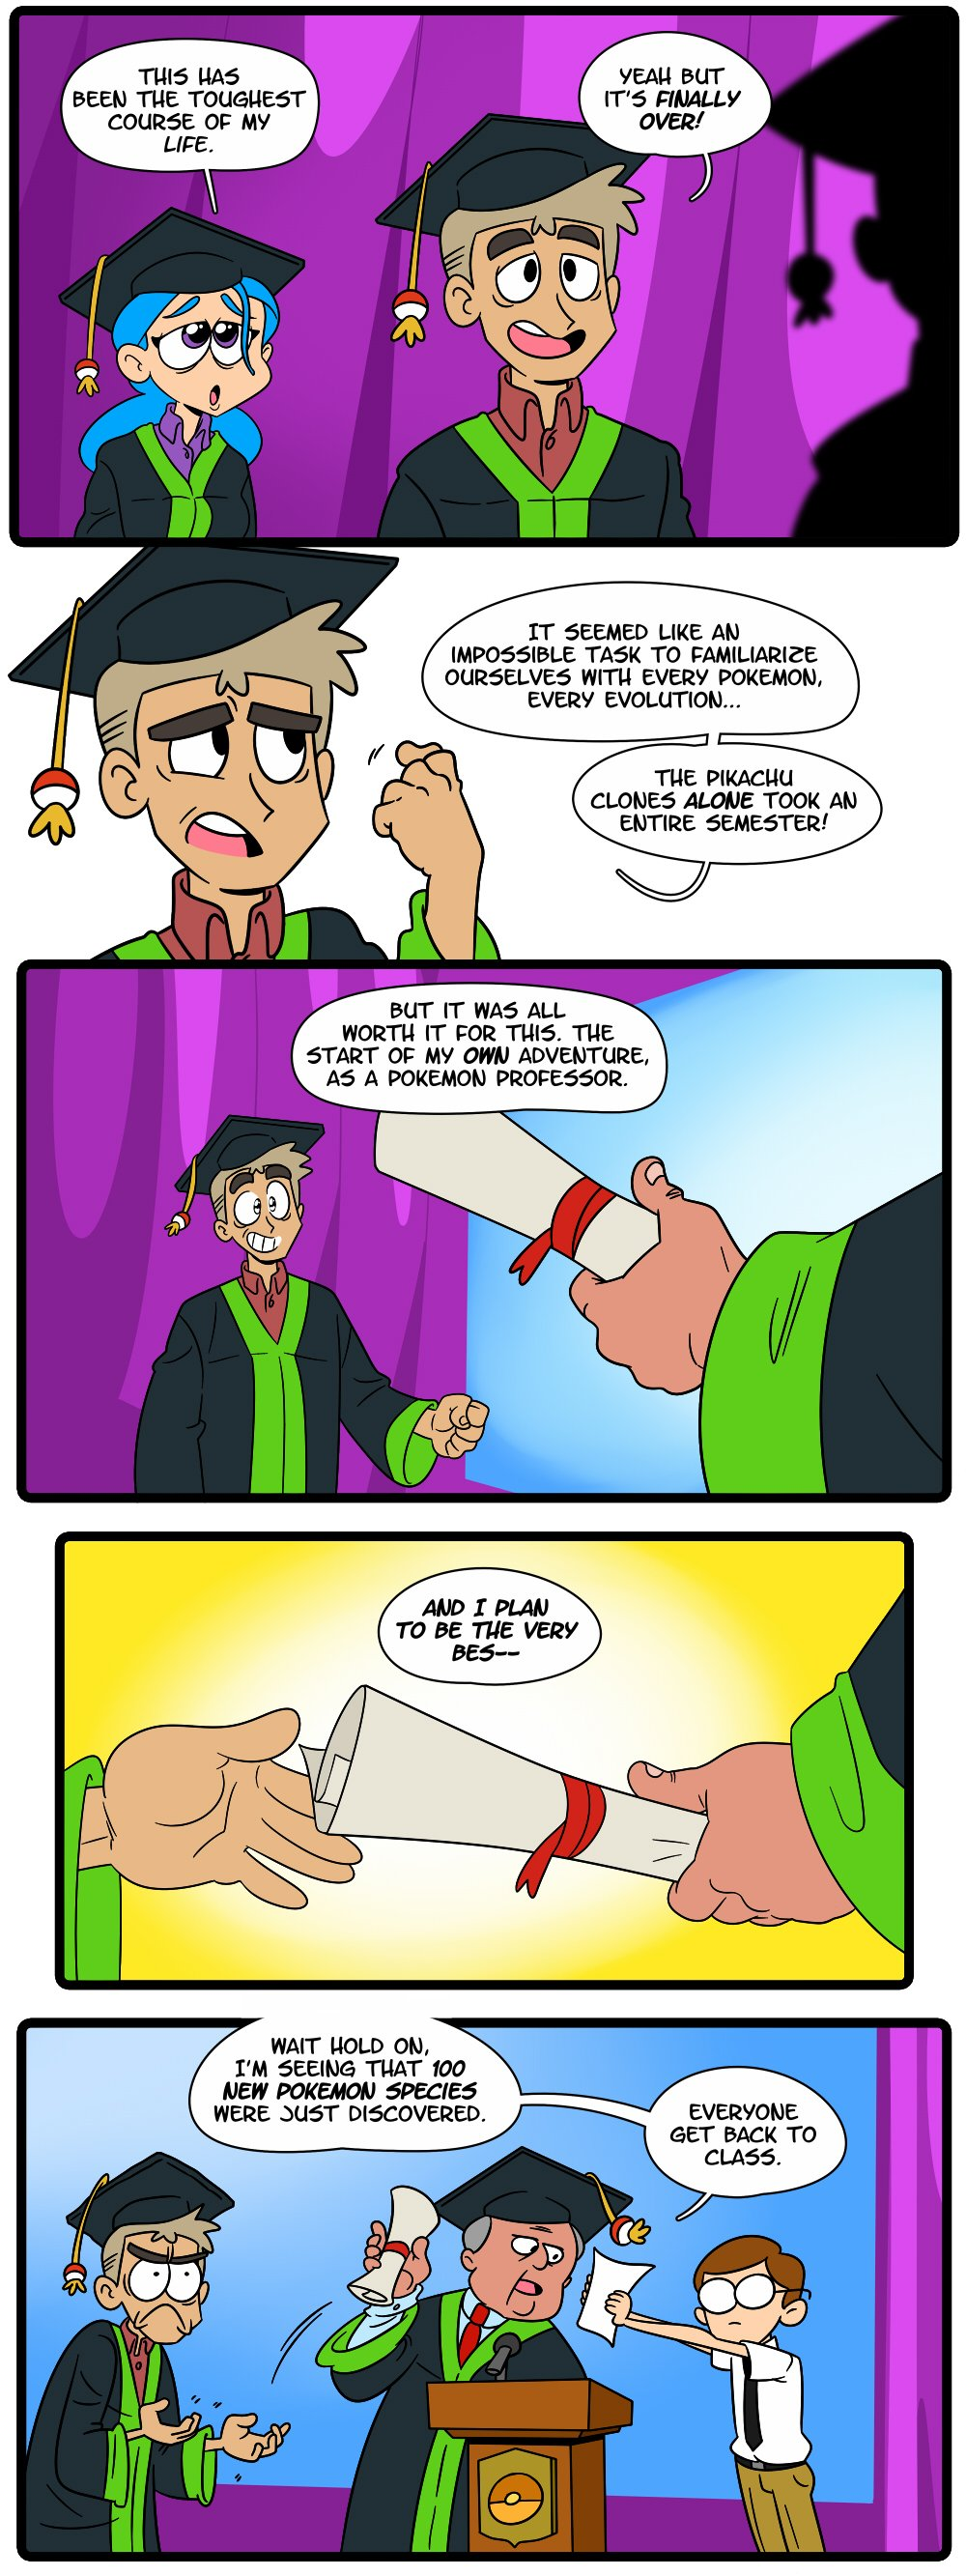 Pkmn-Professor-1-Comics